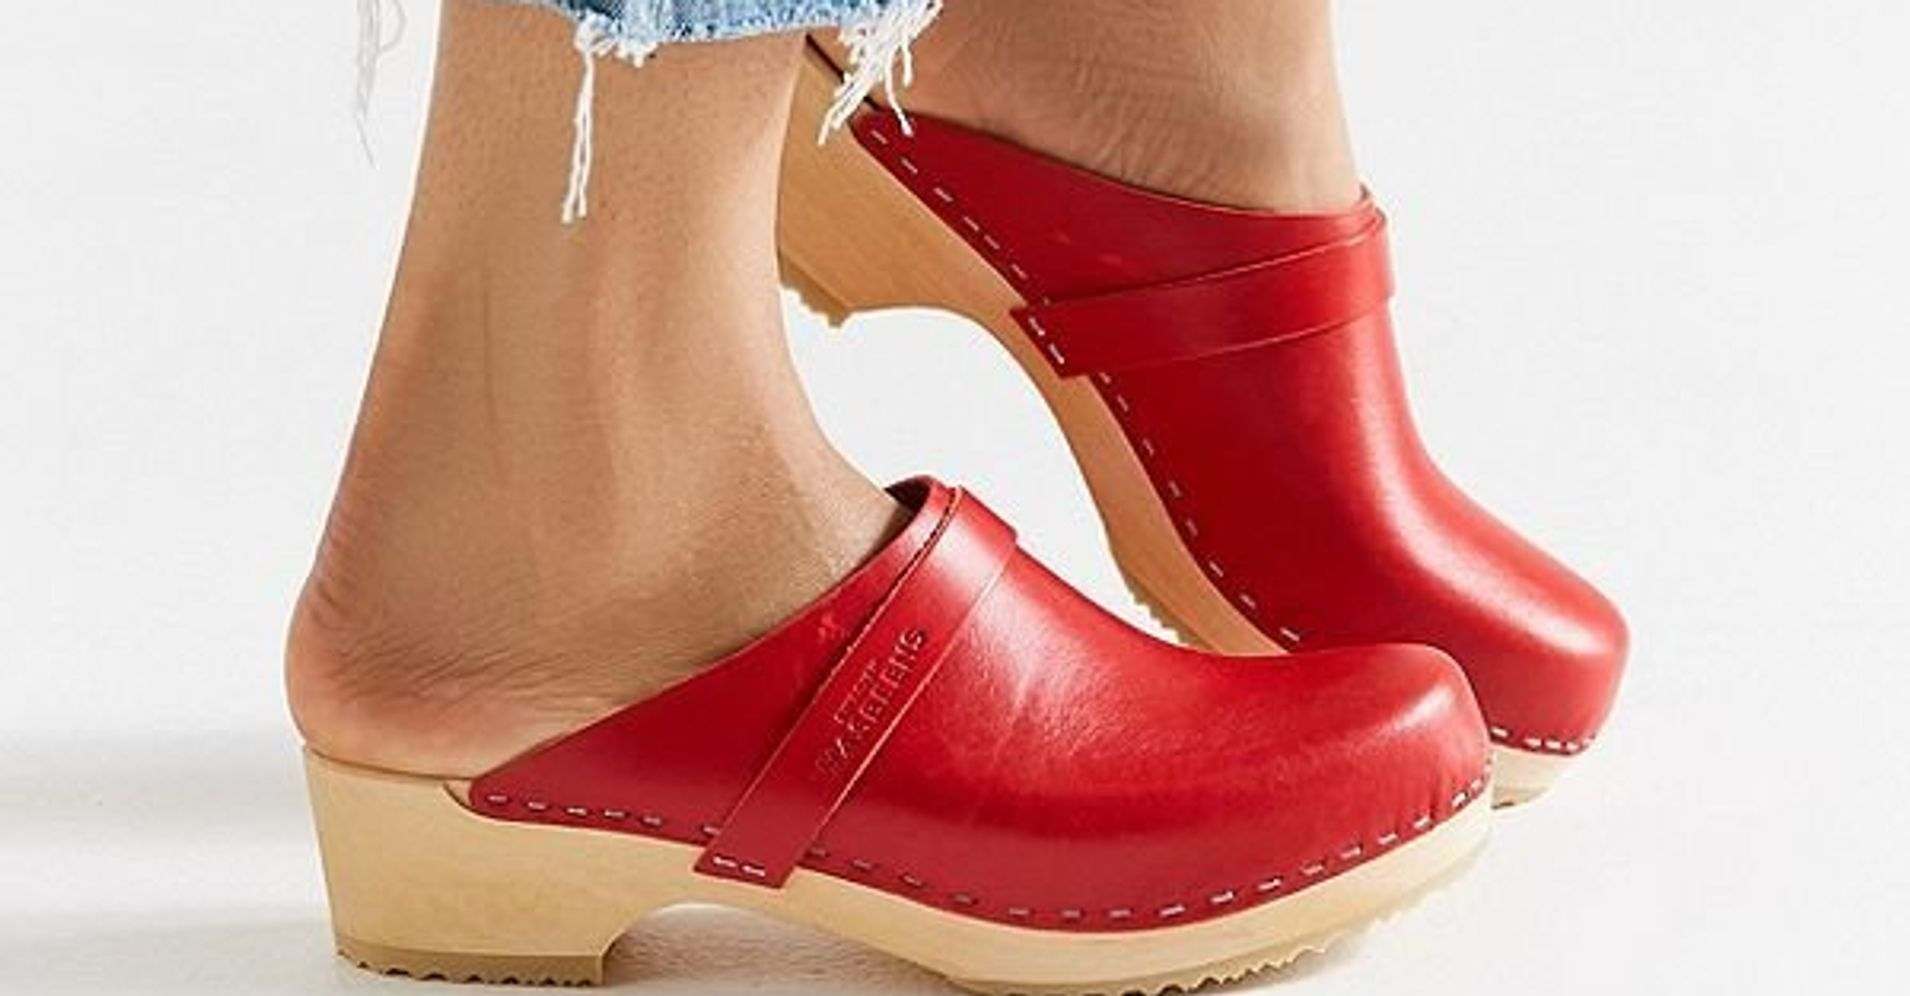 214054d835981 The Best Of Urban Outfitters  Spring Shoe Sale - CentralNewsDaily